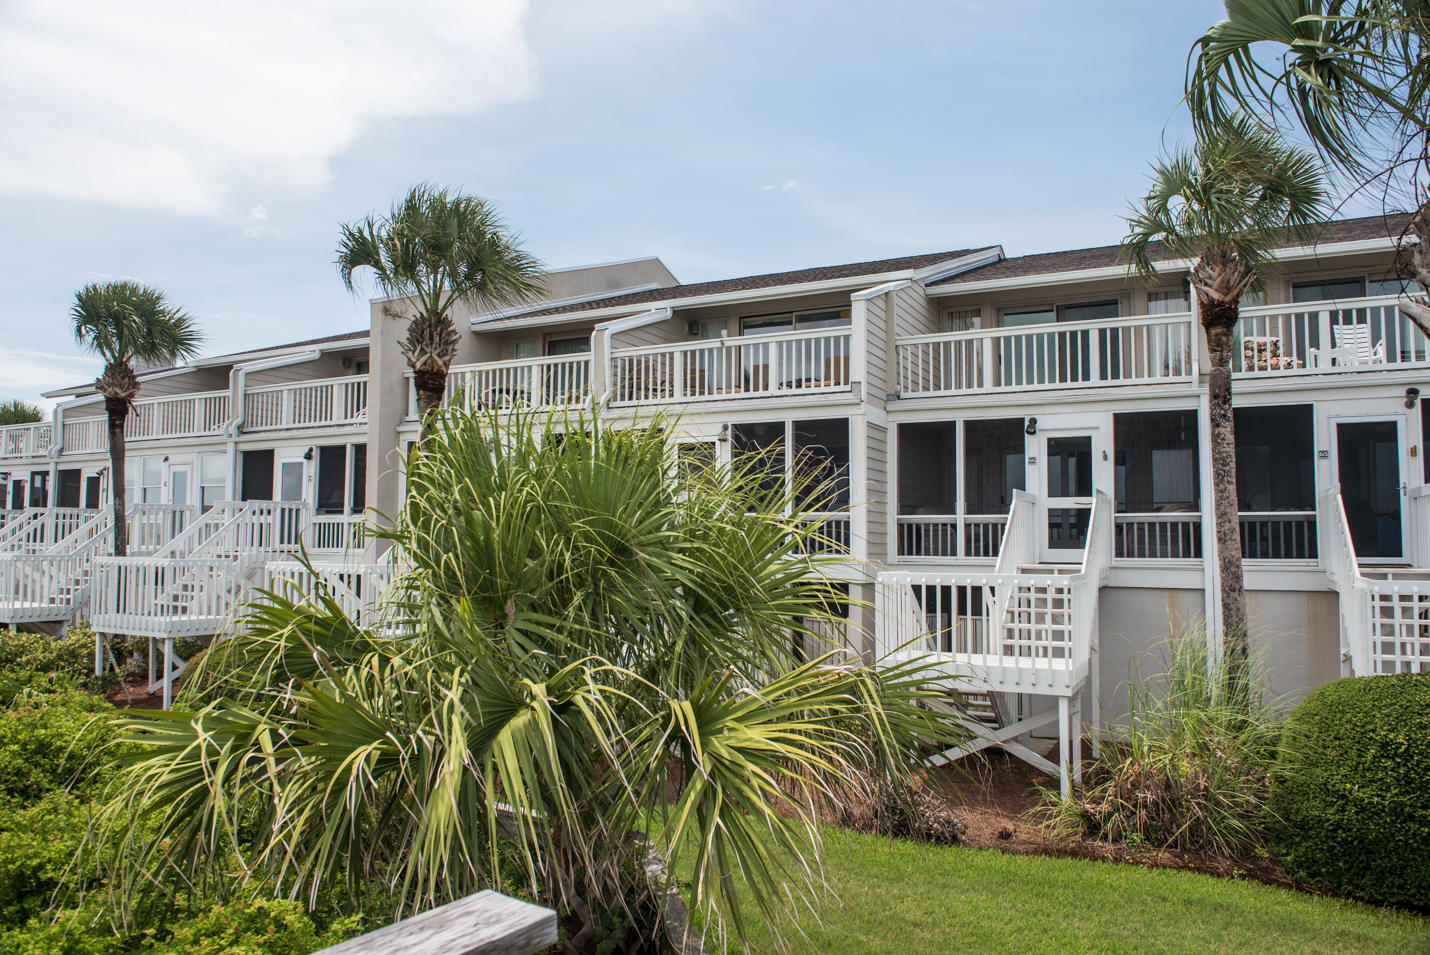 Beach Club Villas Homes For Sale - 66 Beach Club Villas, Isle of Palms, SC - 16